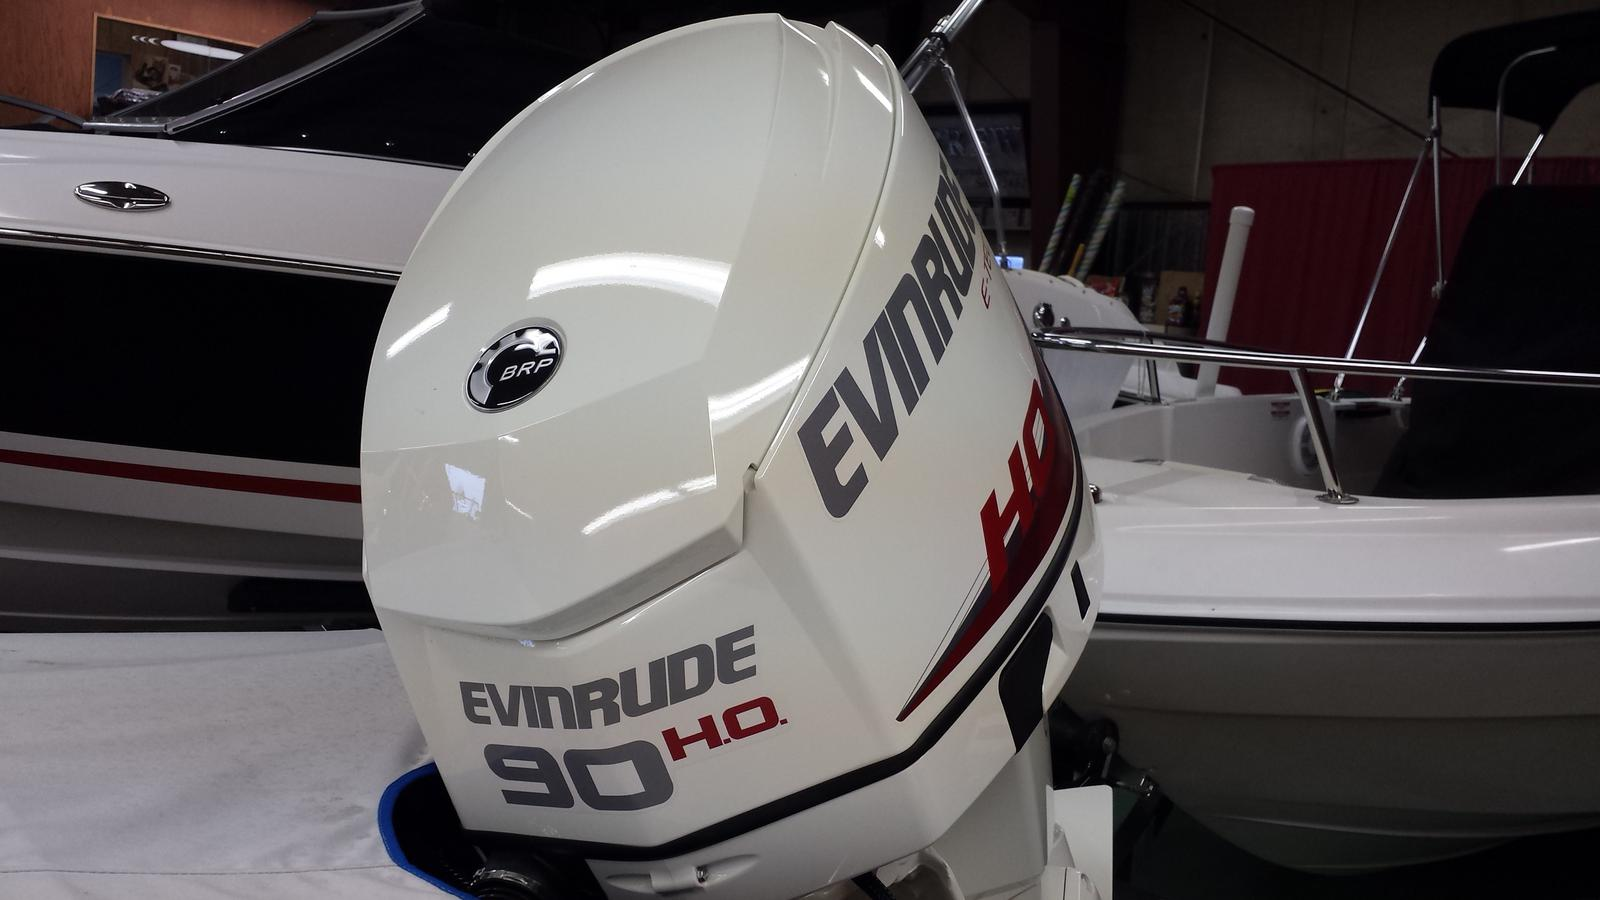 2018 Evinrude boat for sale, model of the boat is E90HSLAF & Image # 1 of 1